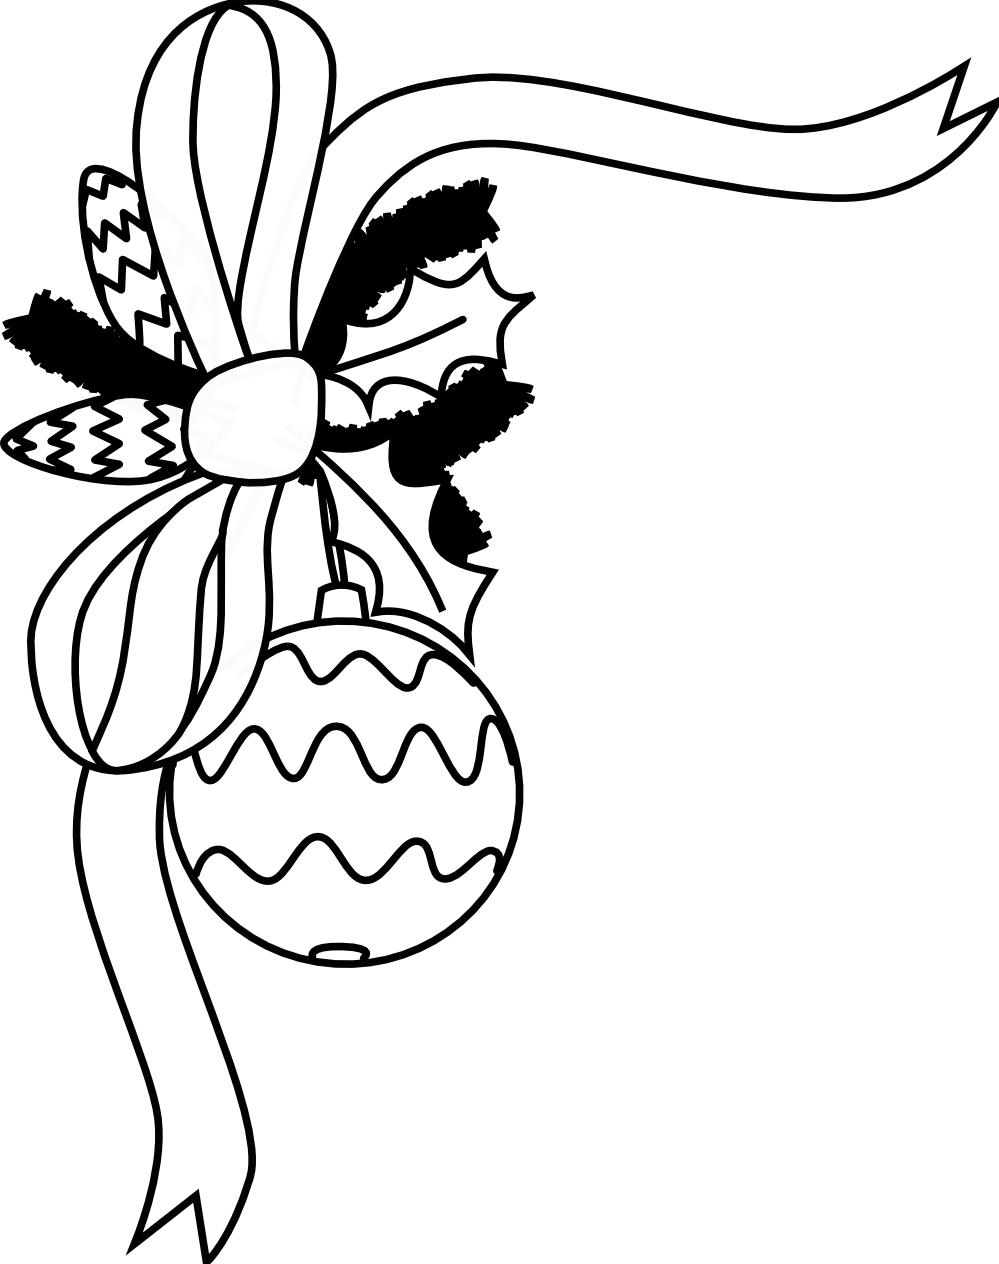 Free religious black and white clipart for christmas. Clip art panda